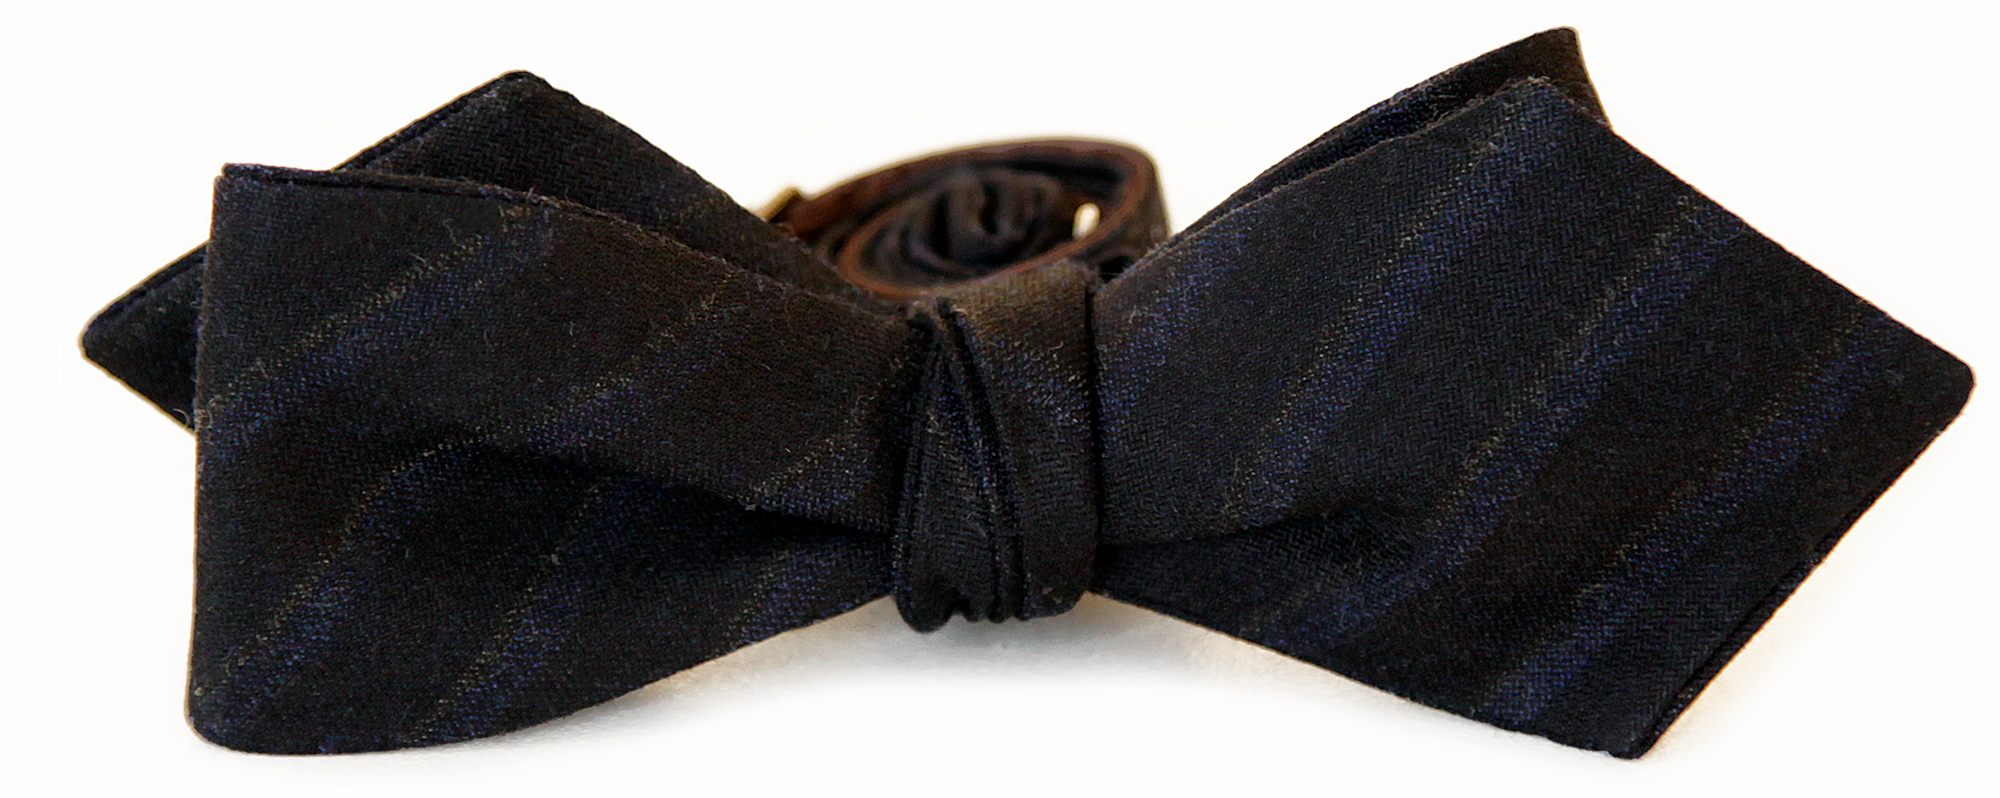 The Ware Bow Tie